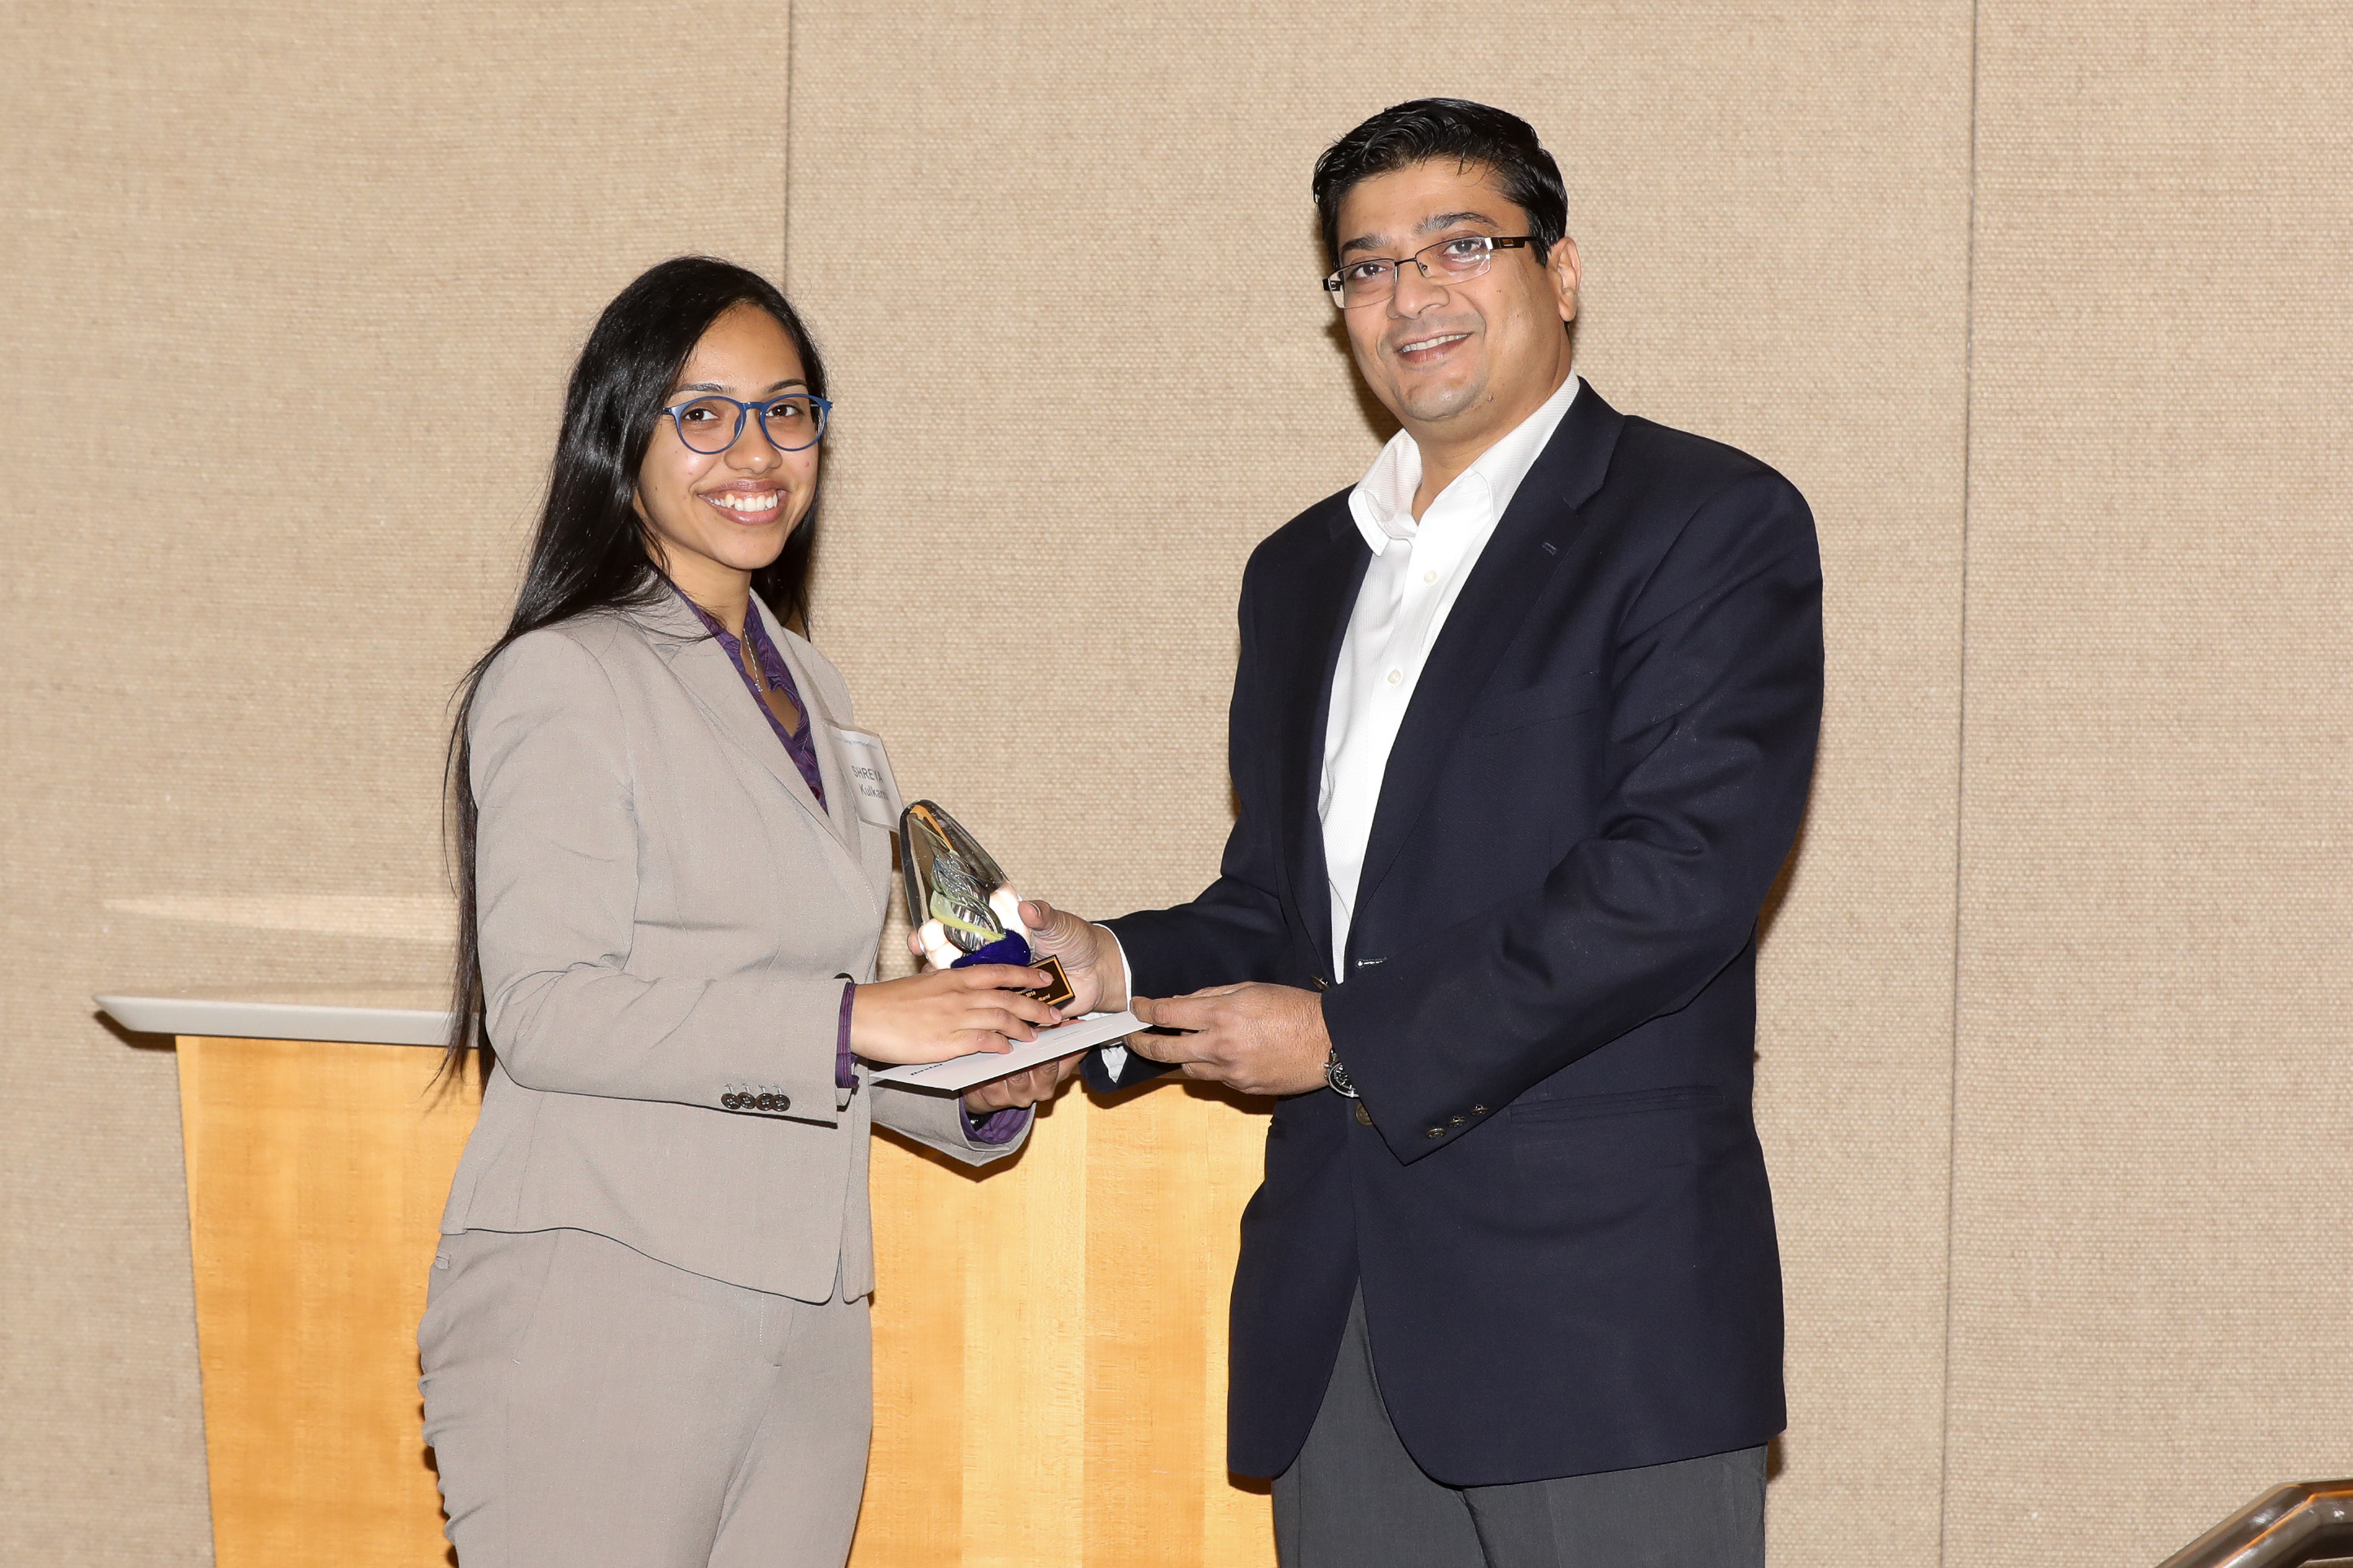 Shreya Kulkarni receives Baxter's Young Investigator award